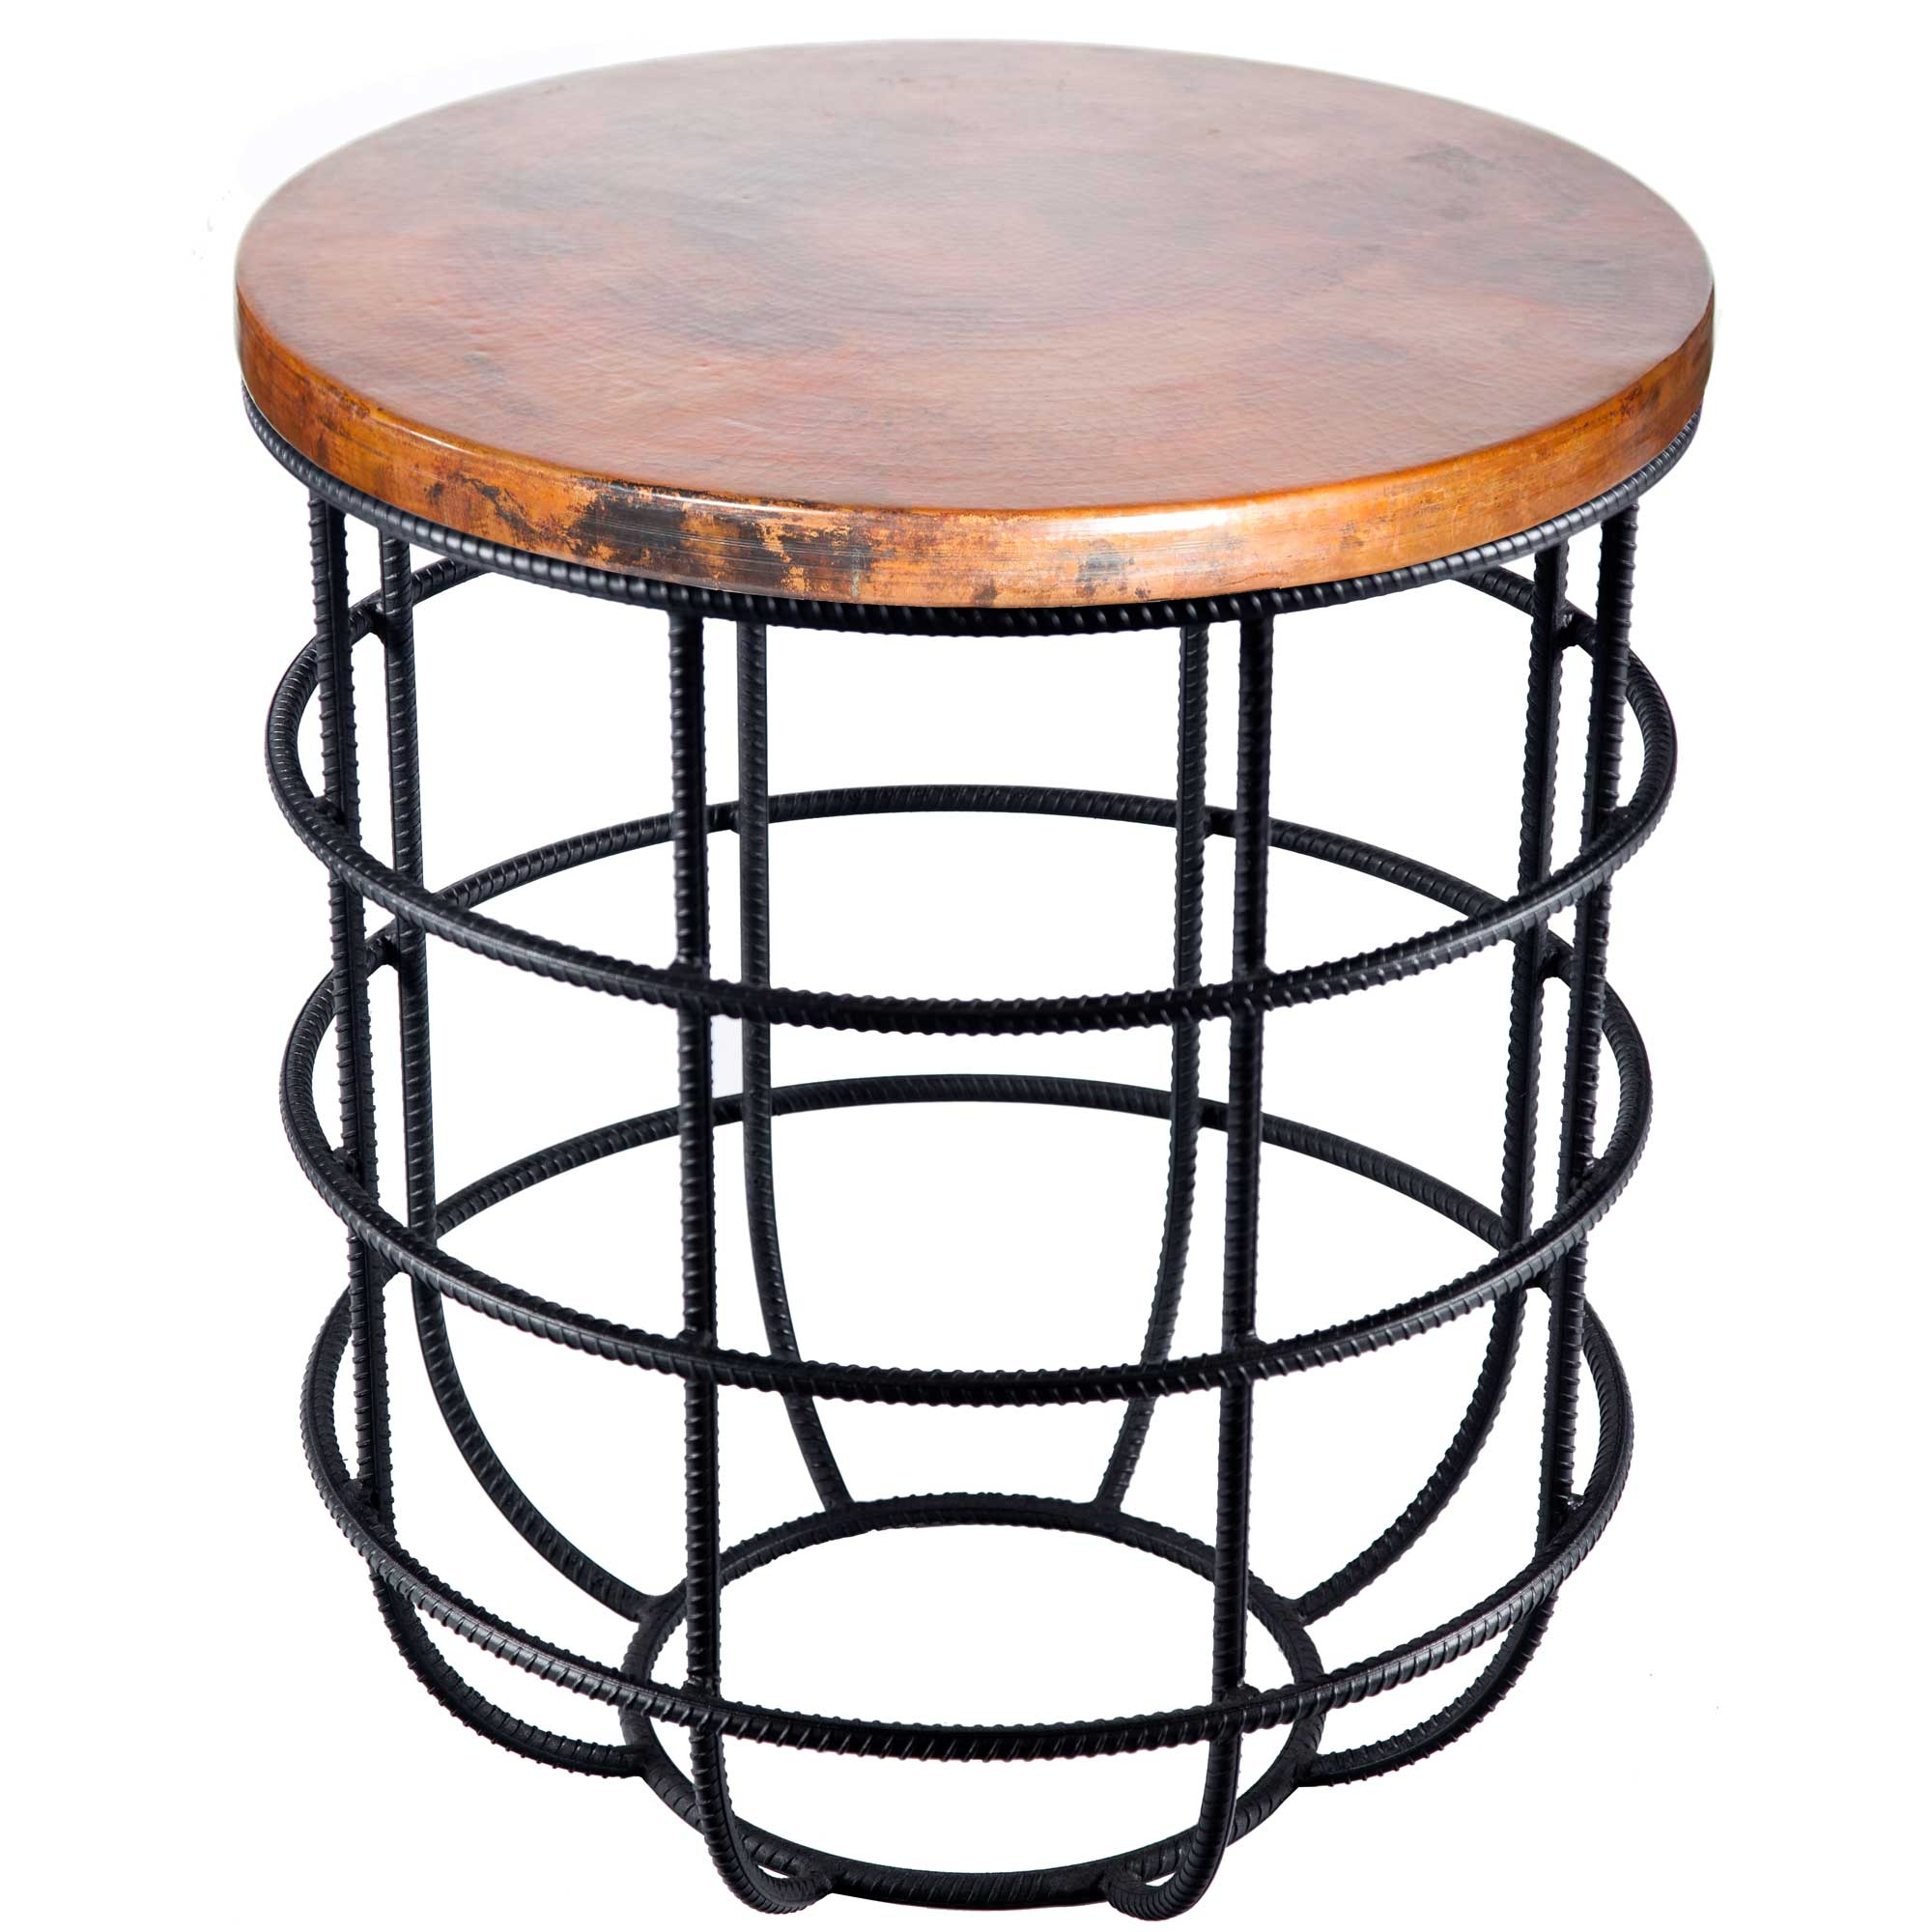 Pictured Here Is The Axel Side Table With Wrought Iron Base And Round  Hammered Copper Table